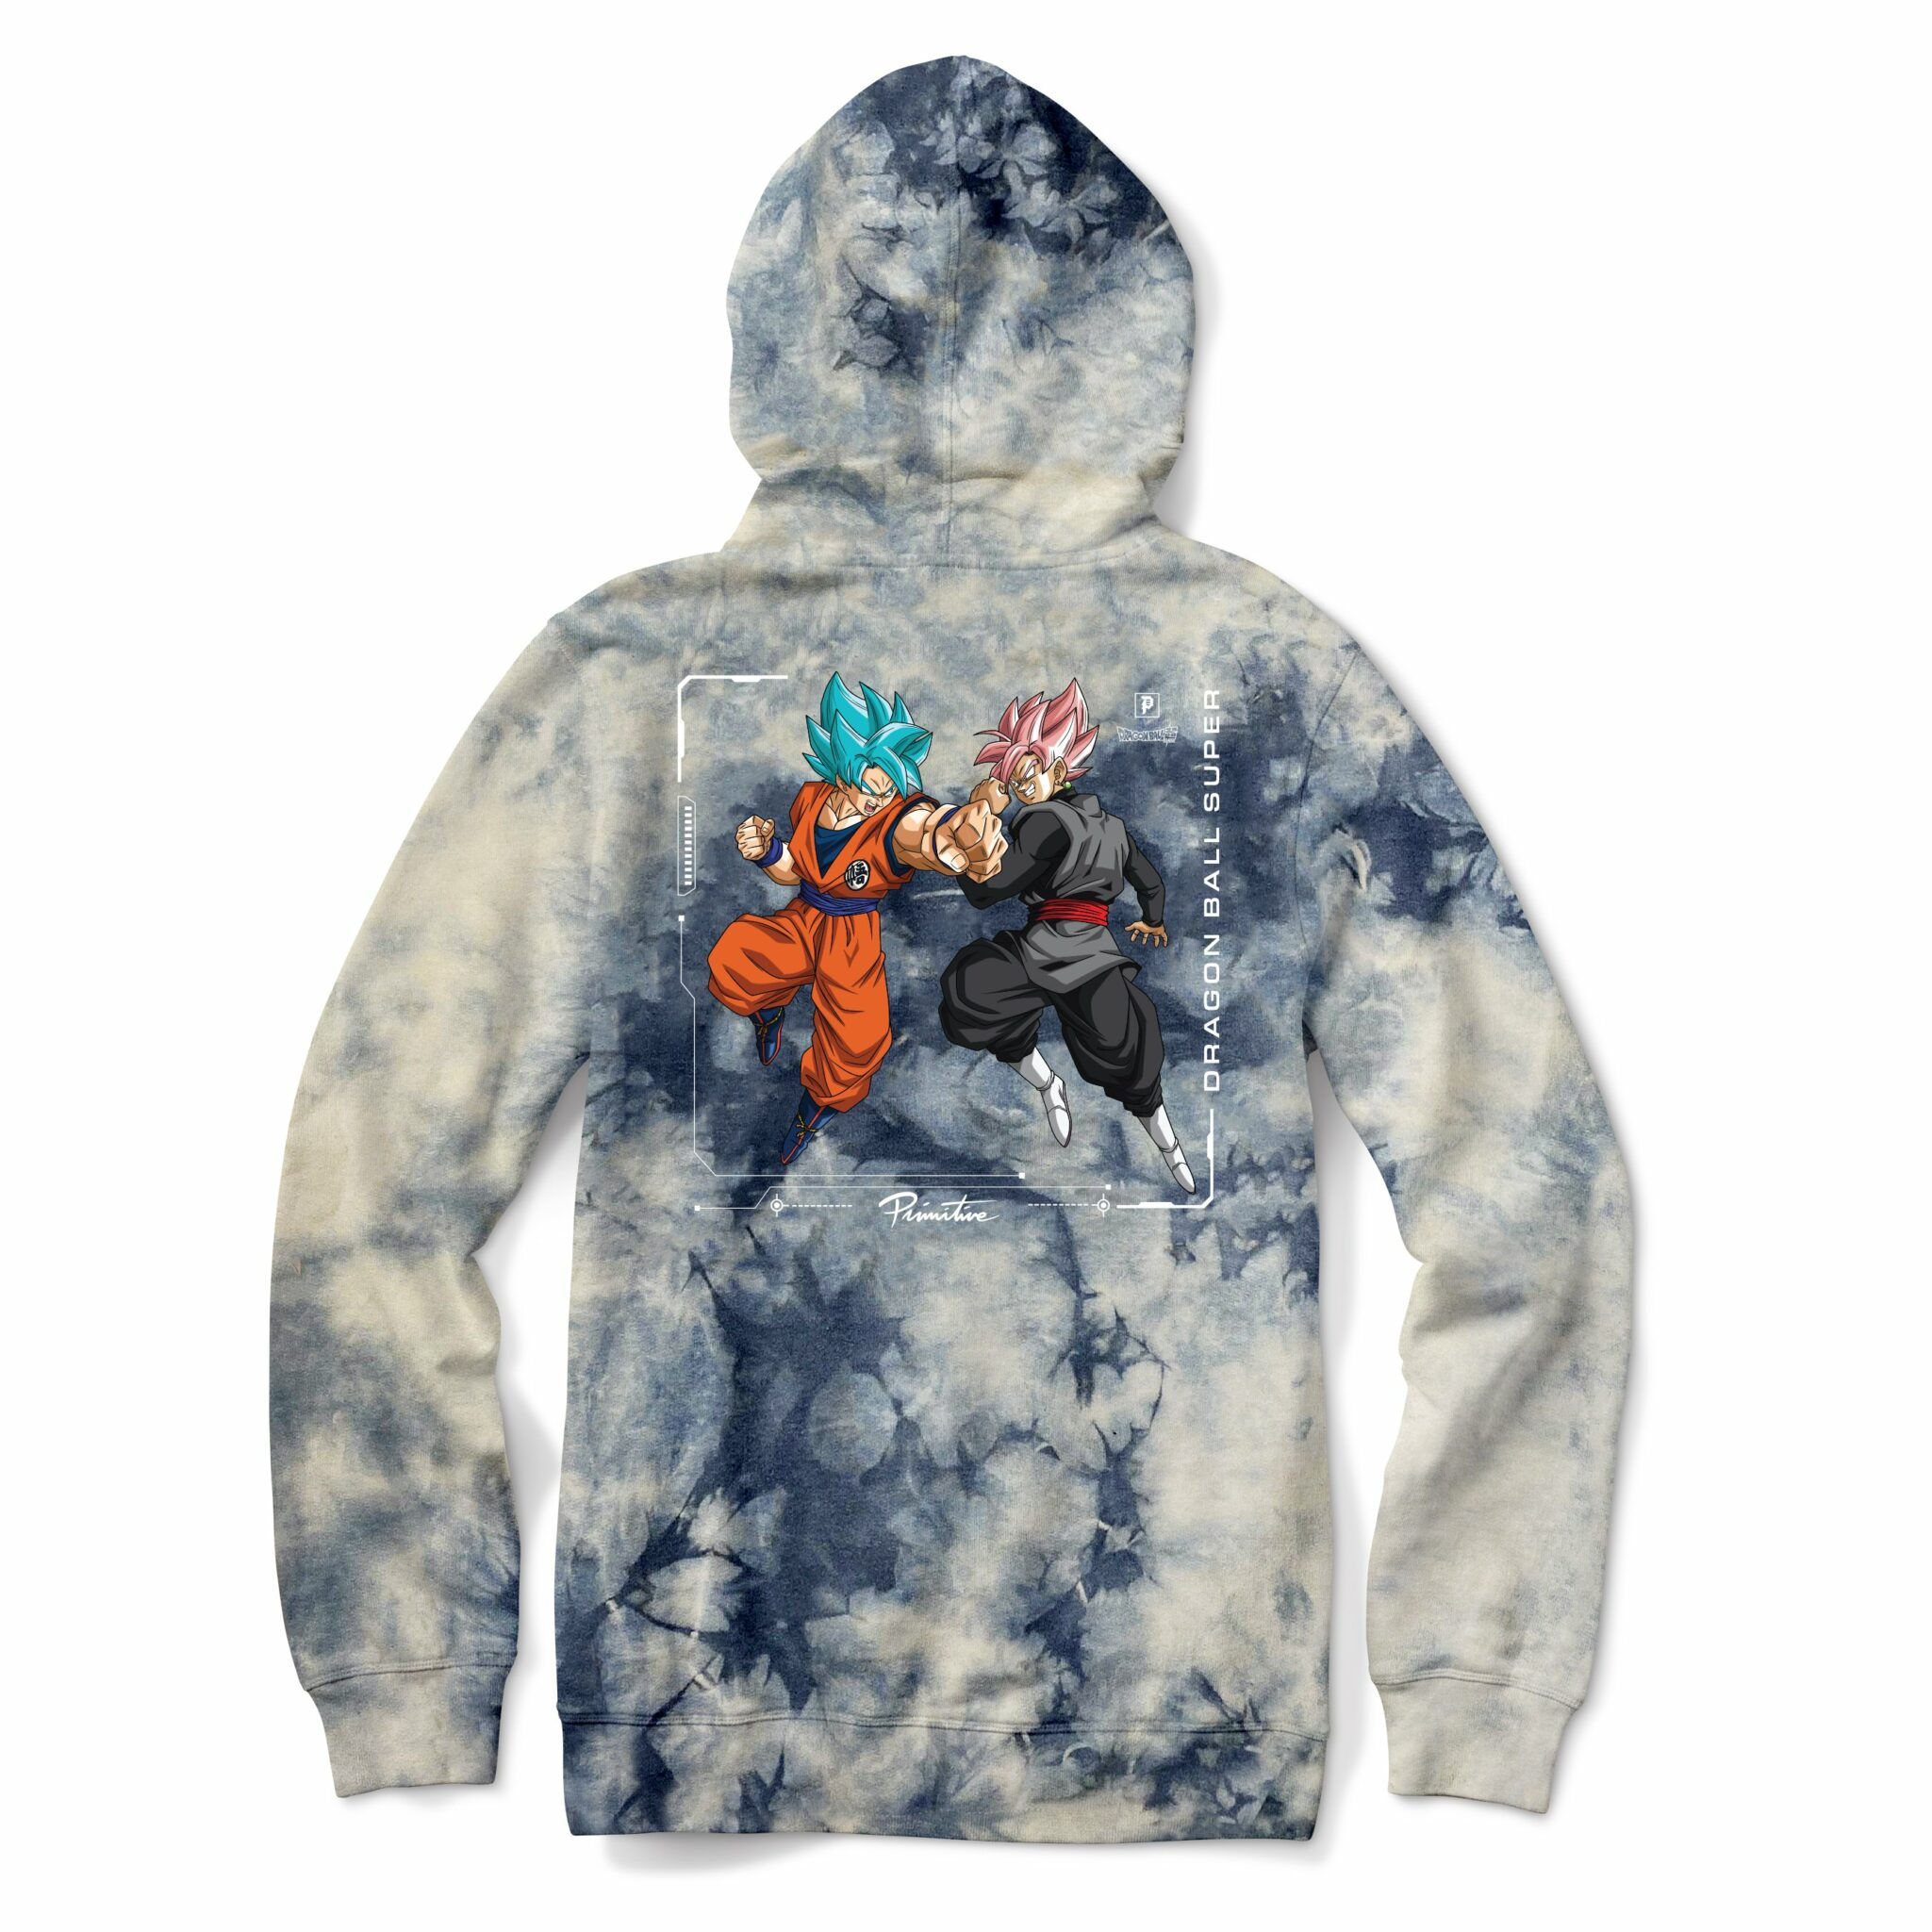 Primitive x Goku Black Rosé Capsule Collection Goku Versus Washed Hoodie